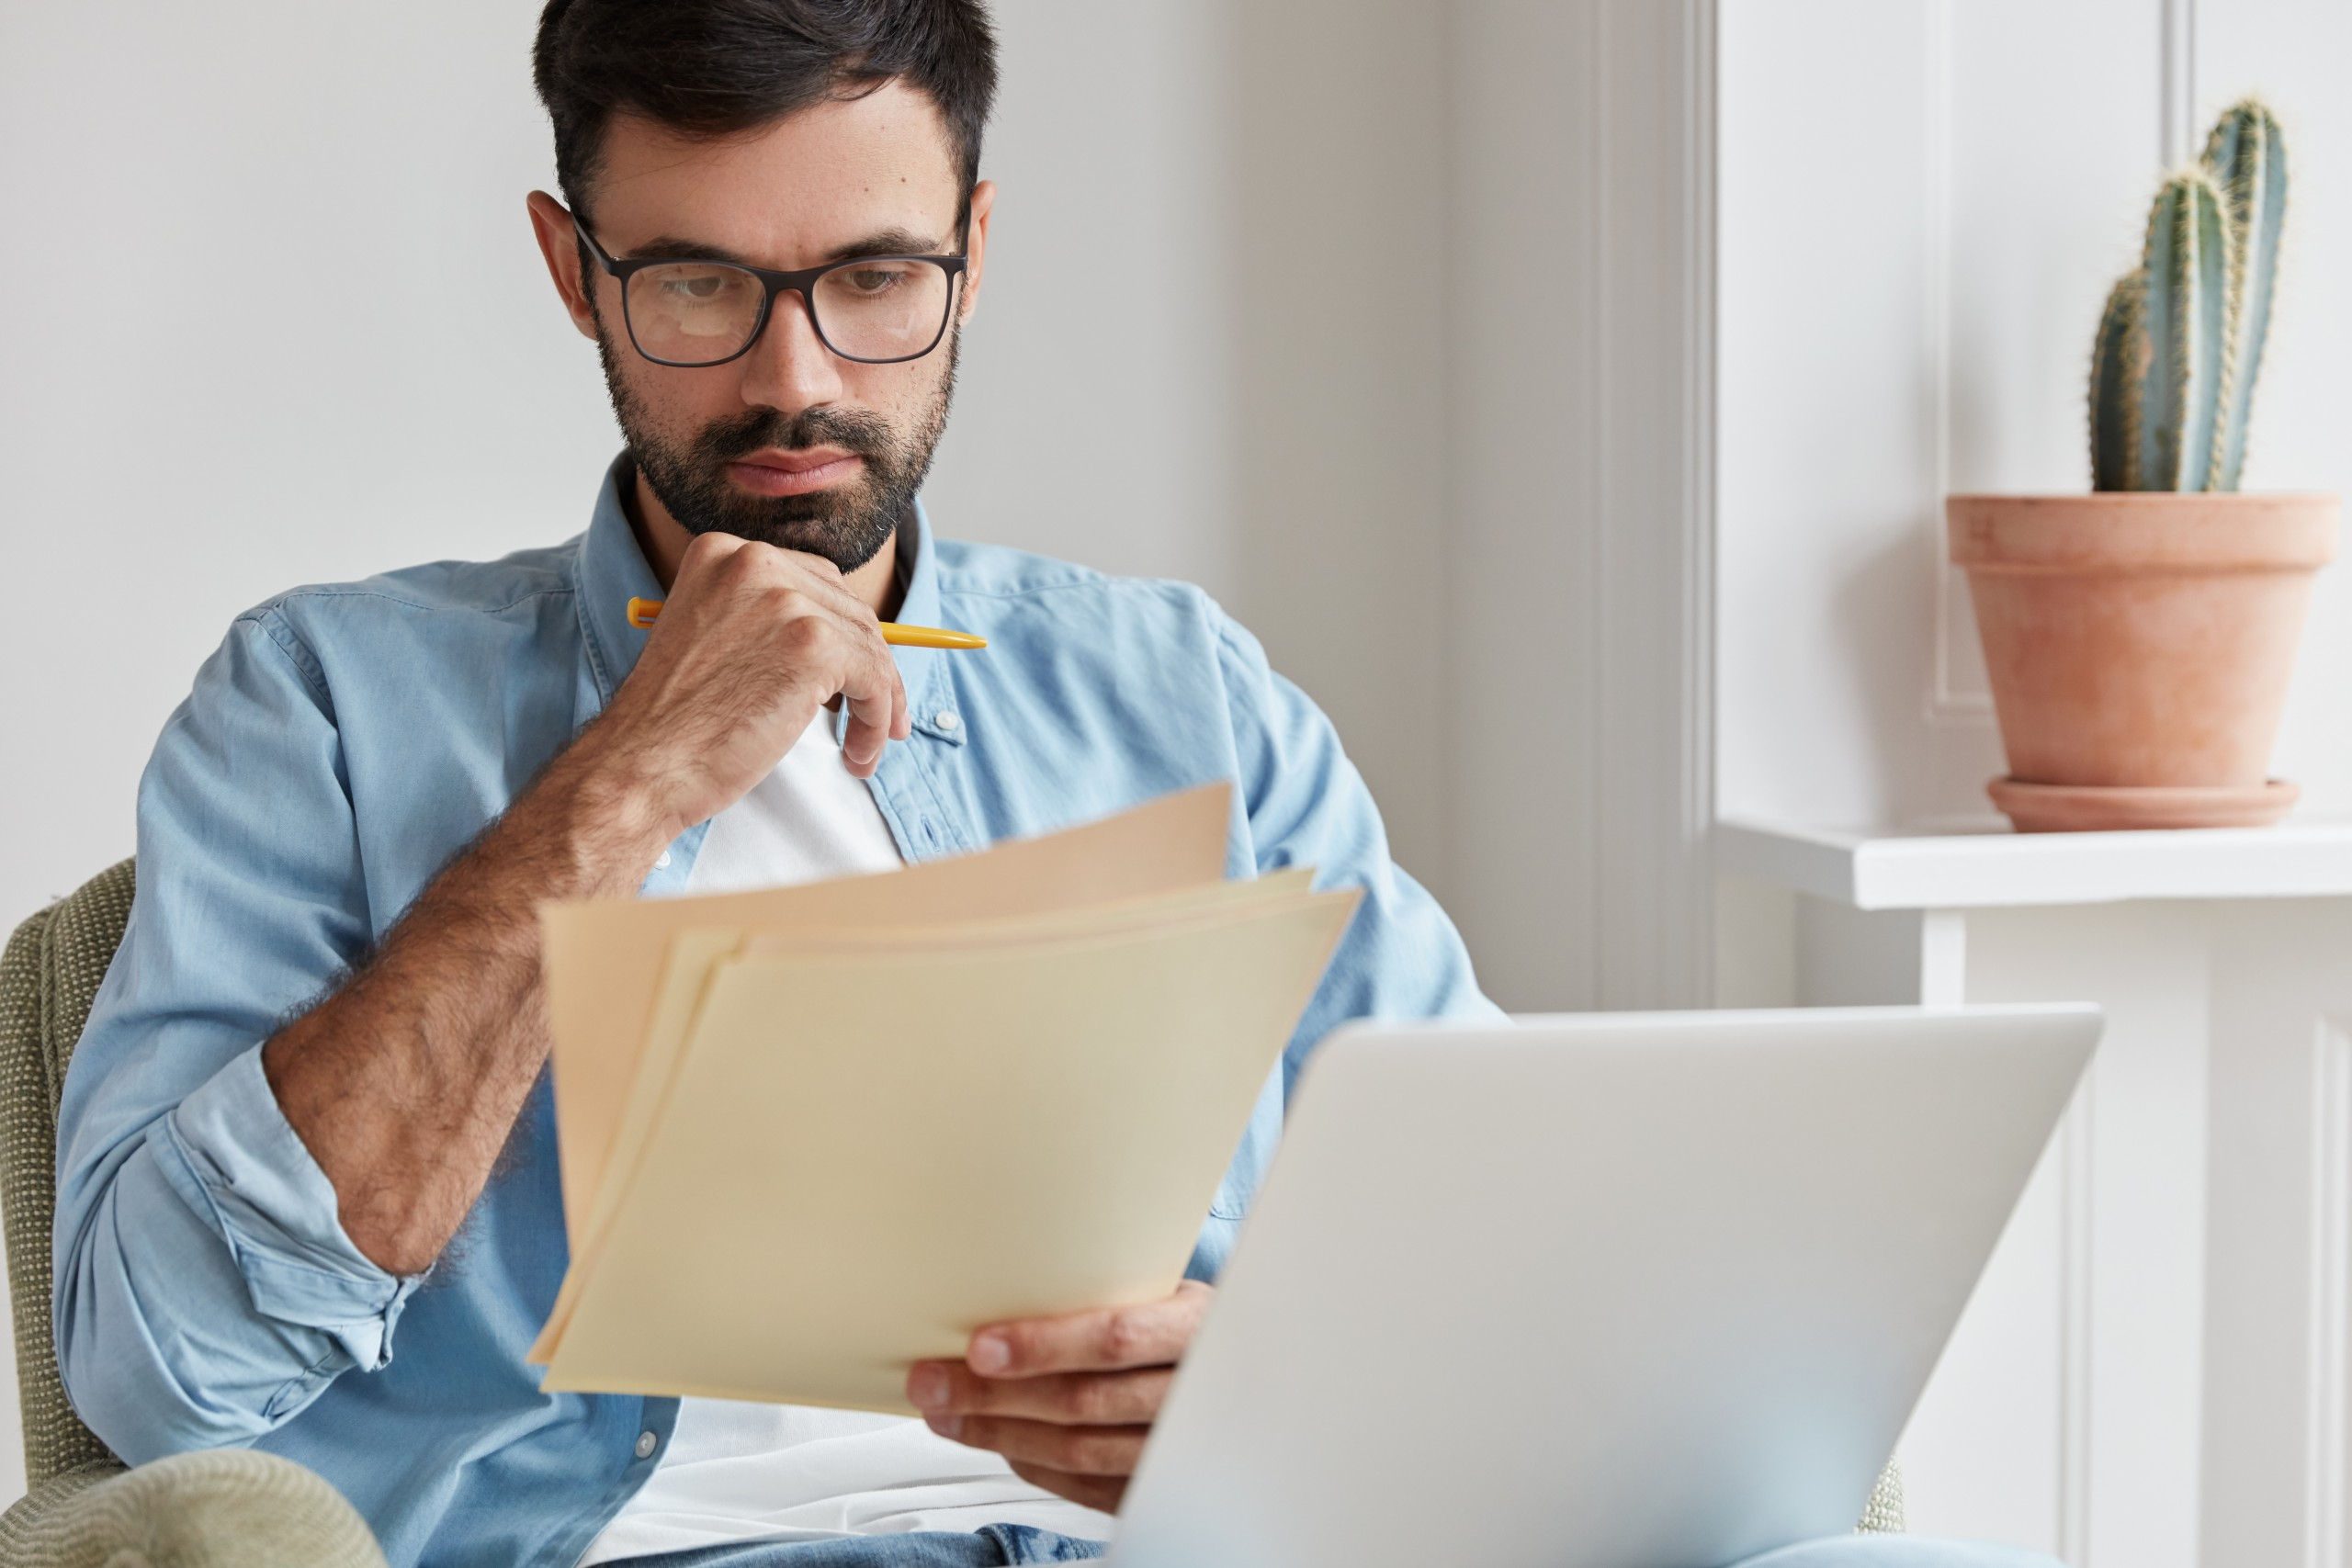 Man reading papers in front of laptop